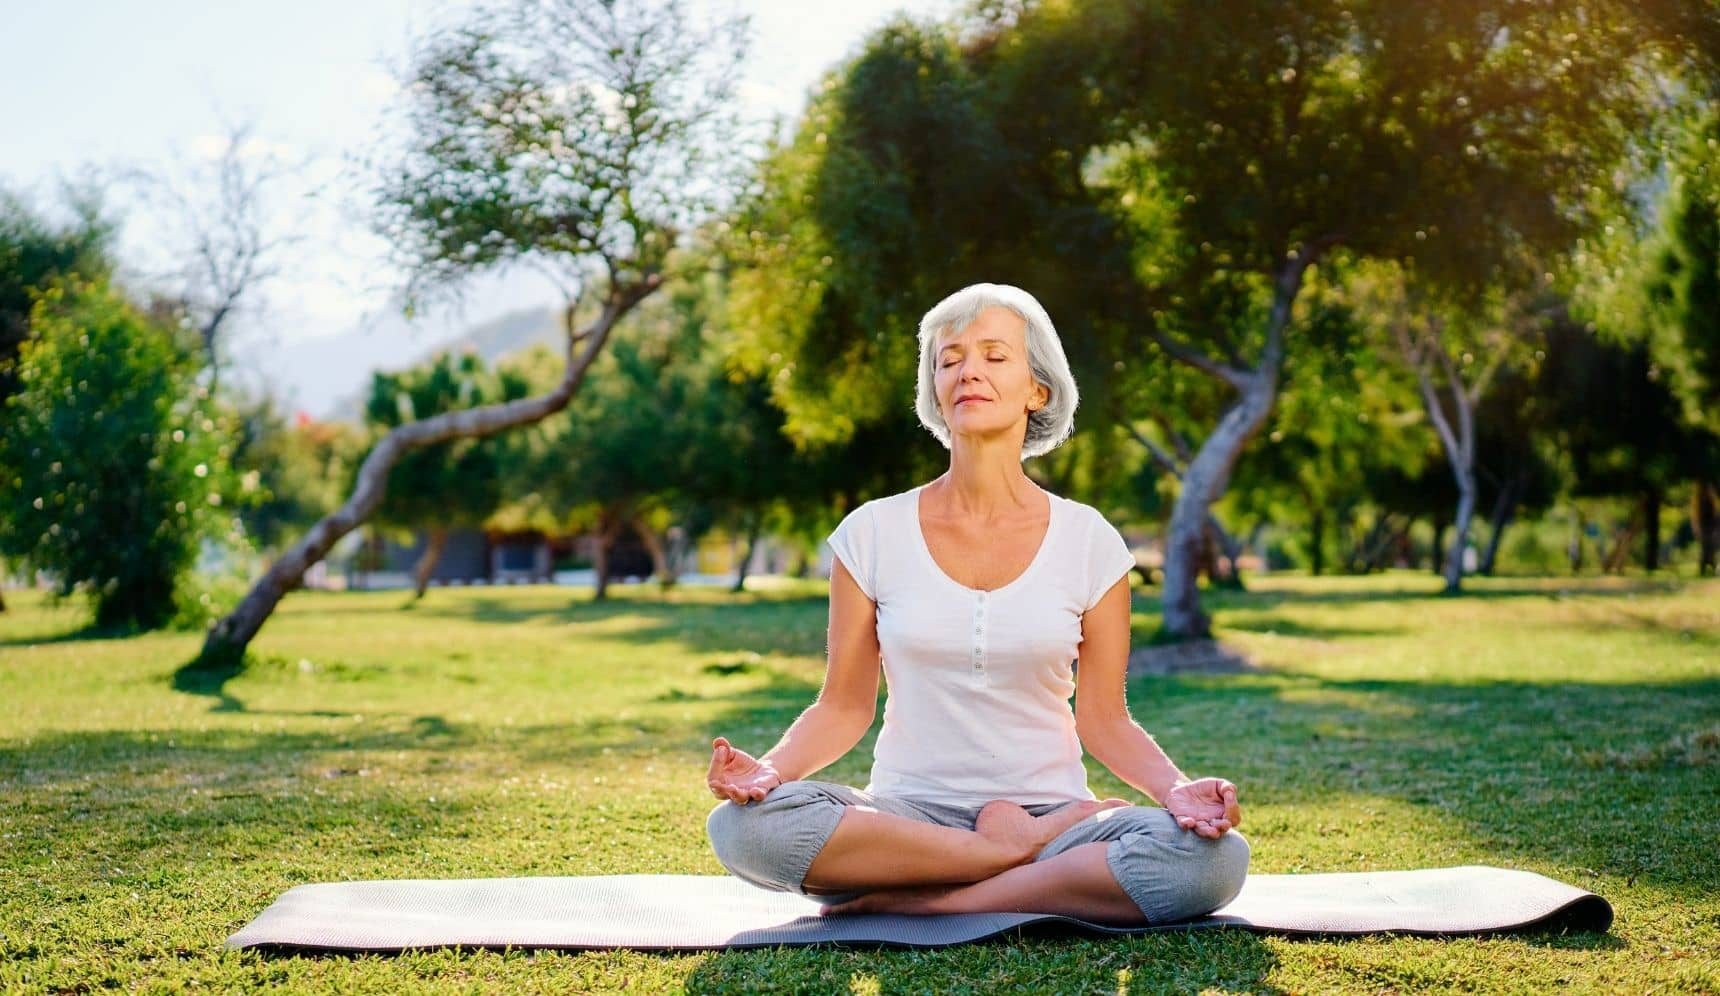 Senior woman meditating on a sunny day in a park